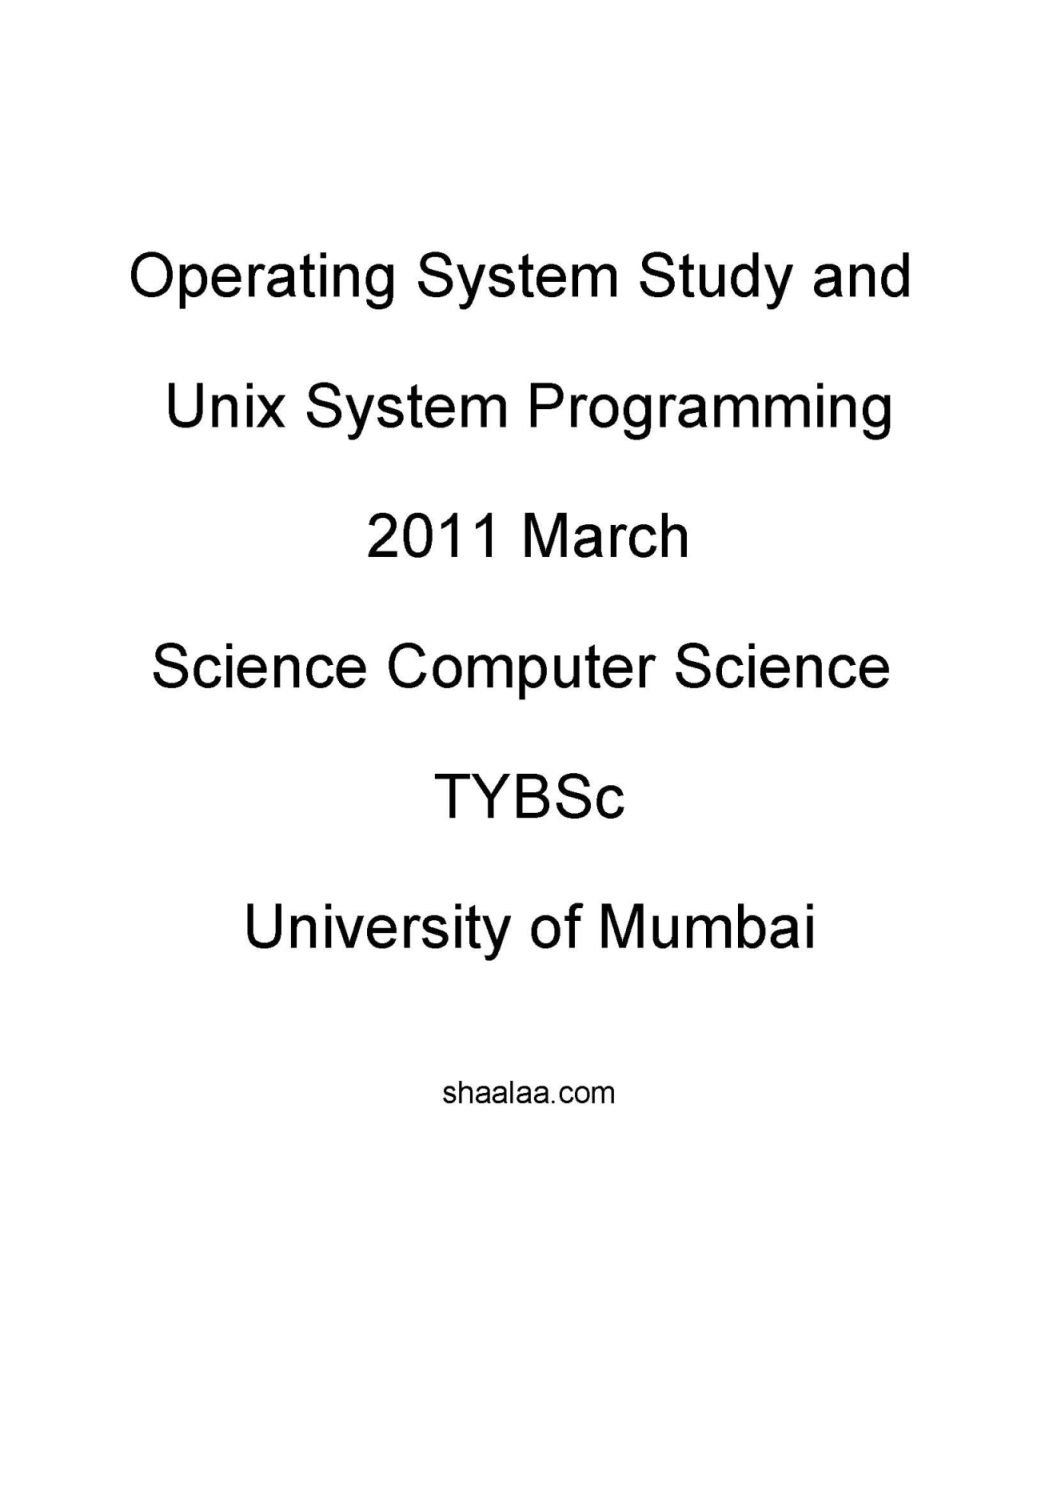 University of Mumbai Science - CS TYBSc Operating System Study and